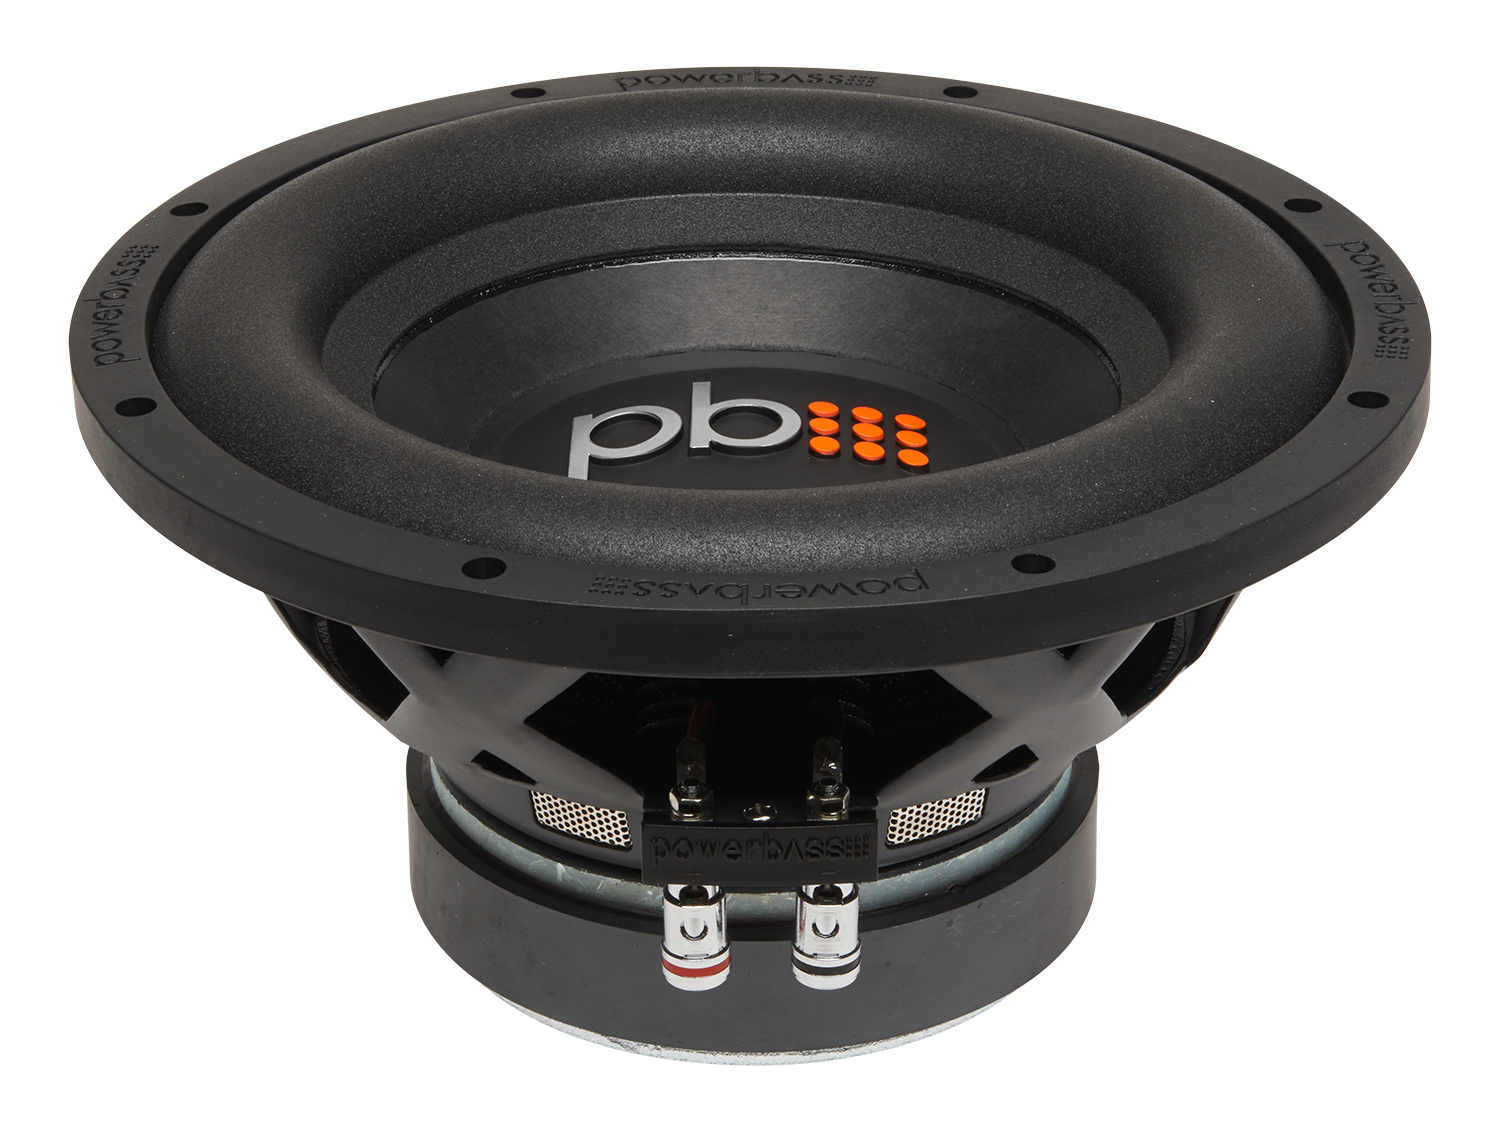 Powerbass S-1004 10-Inch Single 4-Ohm Subwoofer with Large Roll Foam Surrounds